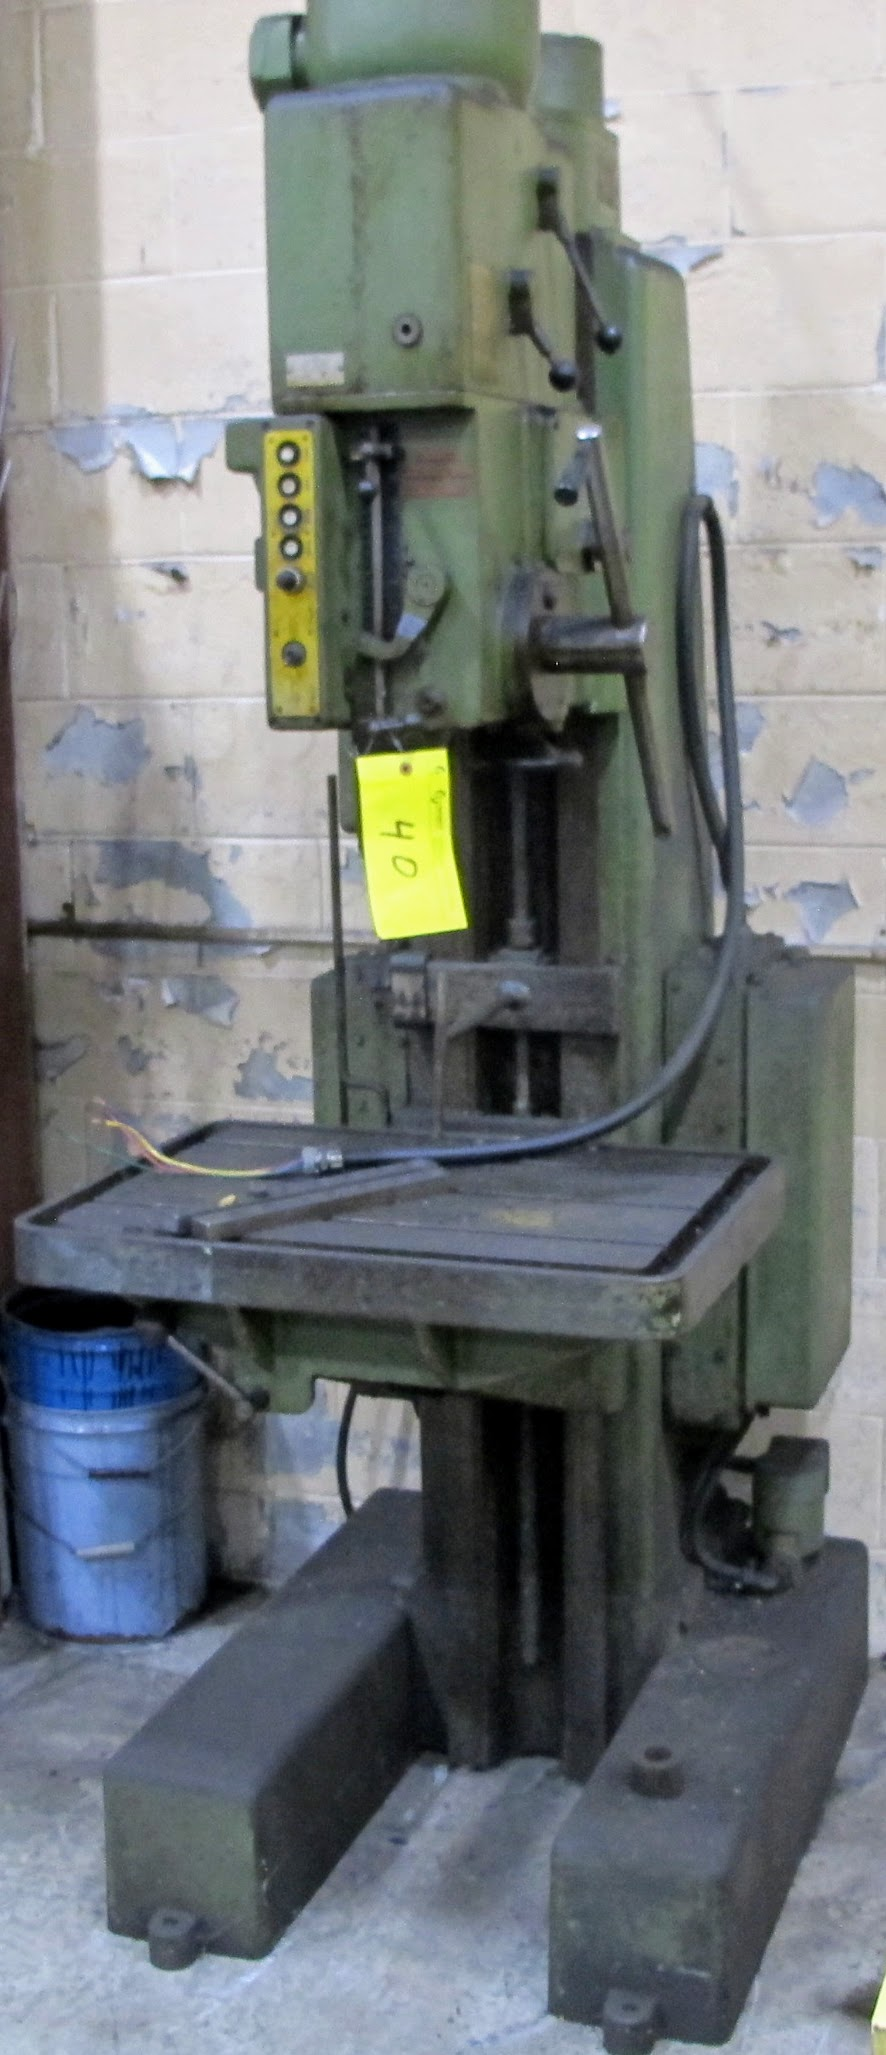 """ARBOGA MASCHINEN M3/4/7 DRILL PRESS, 1 1/4"""" BORES, 60V, 28"""" X 20"""" TABLE, 63 TO 800 RPM, S/N 16225 - Image 3 of 5"""